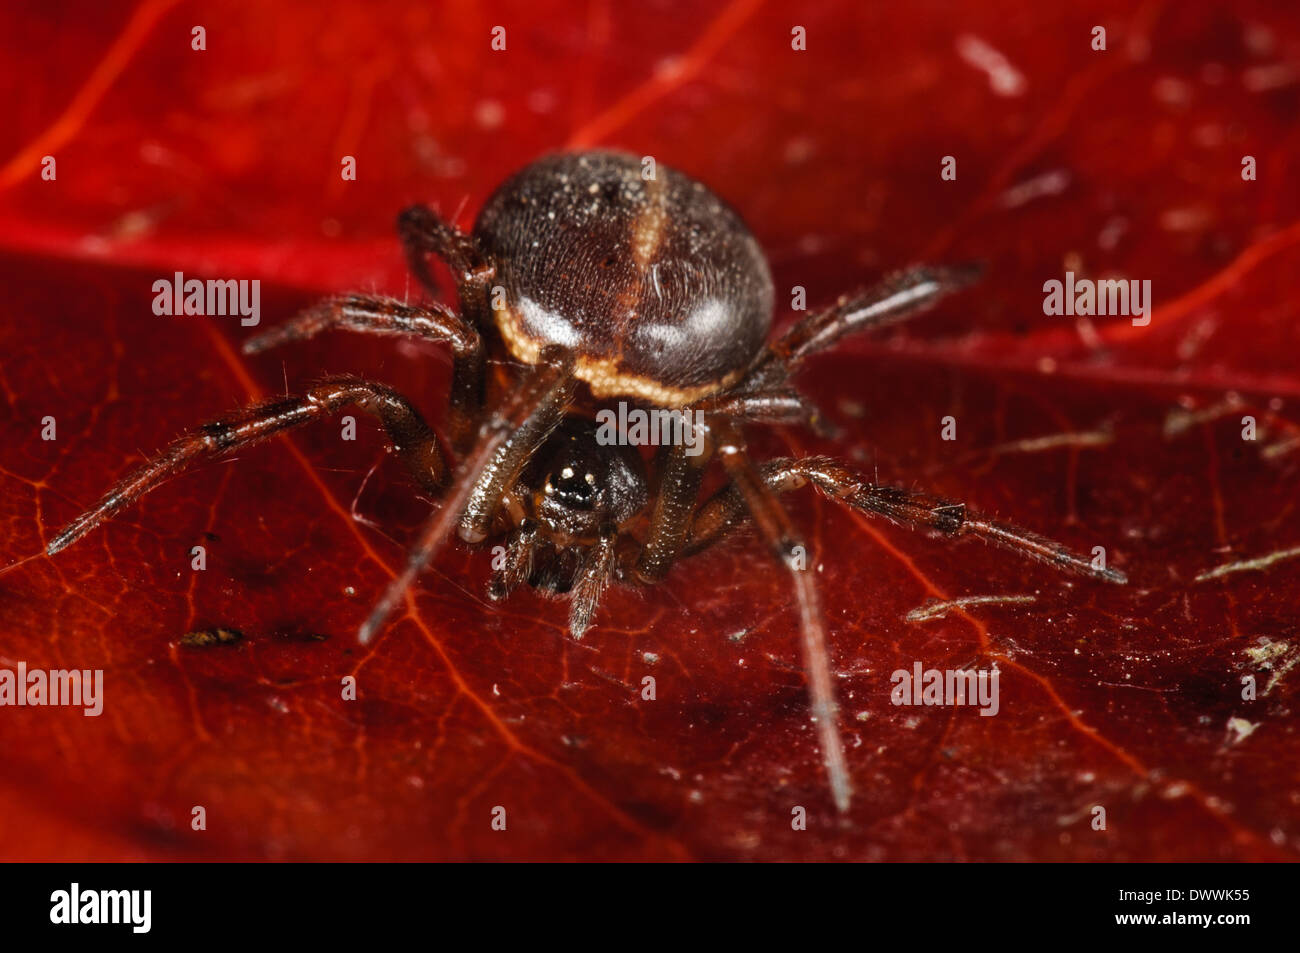 Common false widow, aka rabbit hutch spider (Steatoda bipunctata), adult female sitting on a red leaf in Thirsk - Stock Image